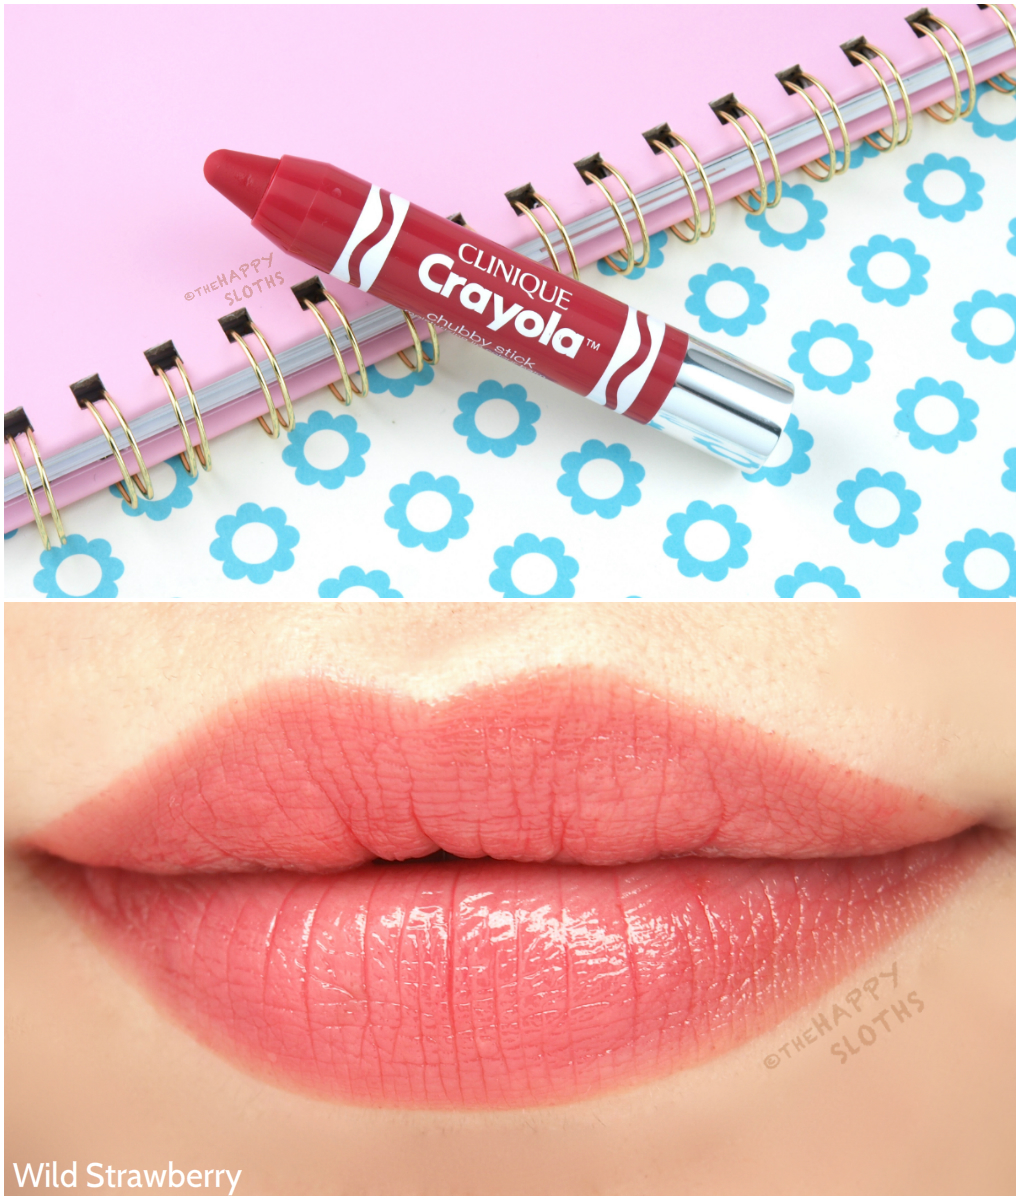 Clinique Crayola Chubby Stick Wild Strawberry: Review and Swatches